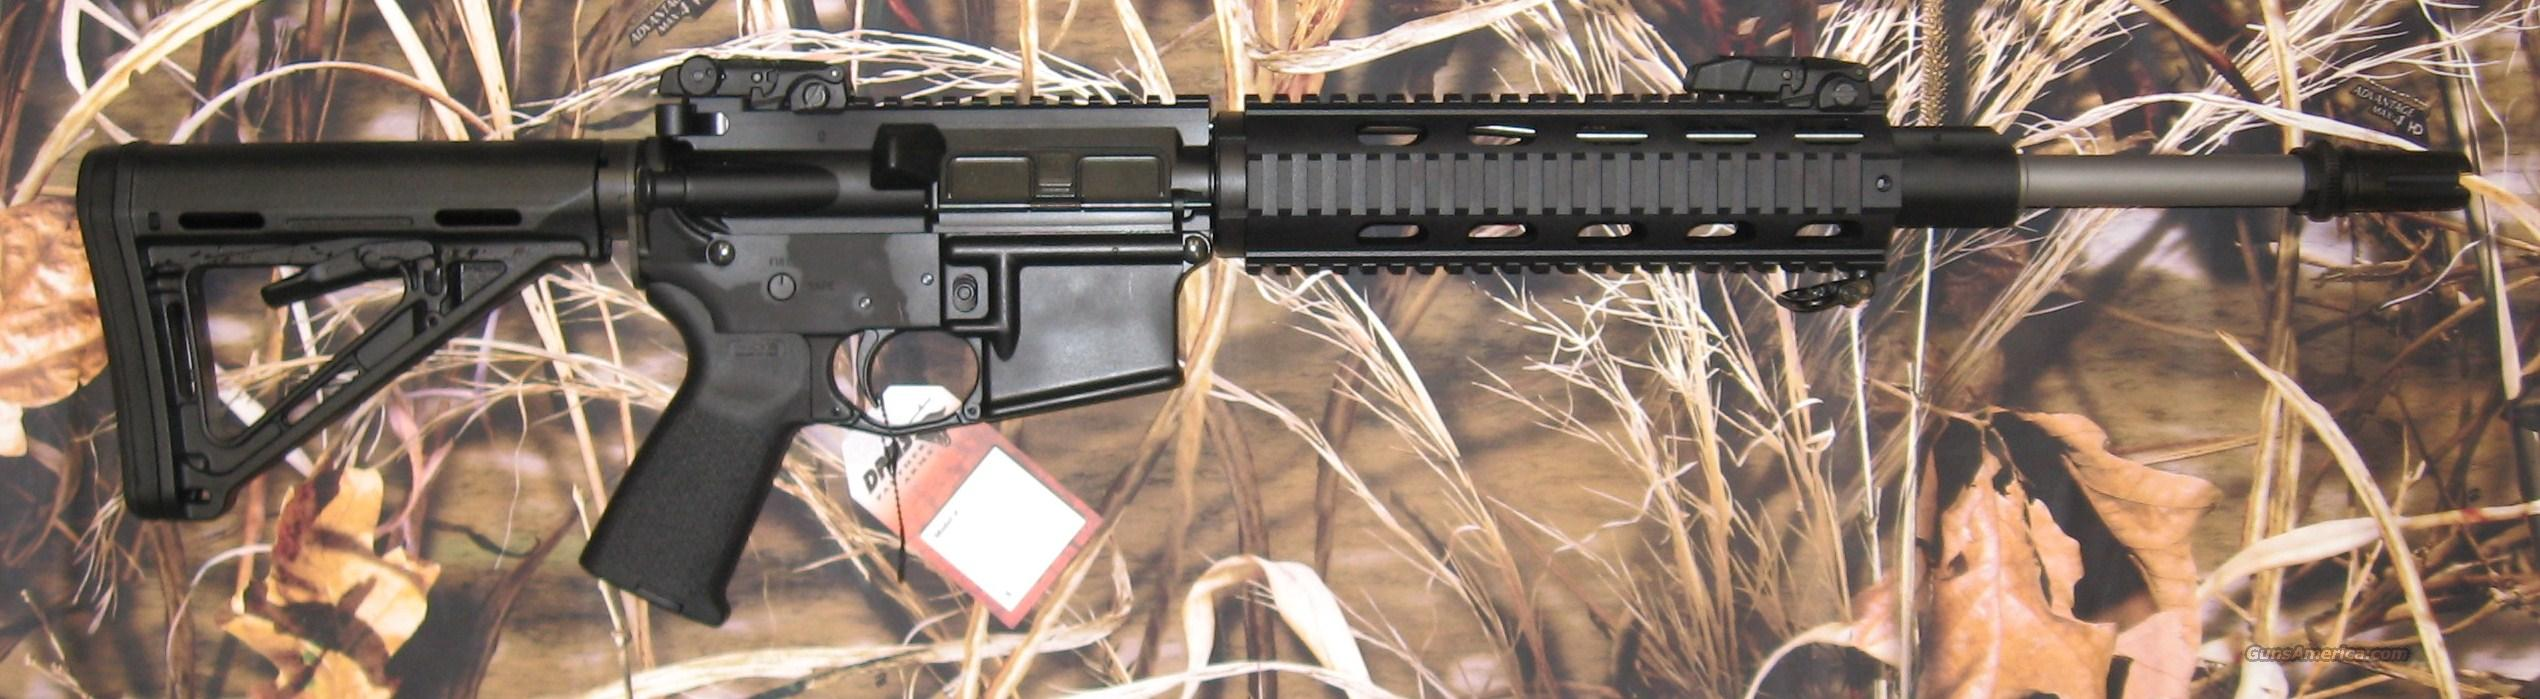 DPMS A-15 Recon    Guns > Rifles > DPMS - Panther Arms > Complete Rifle